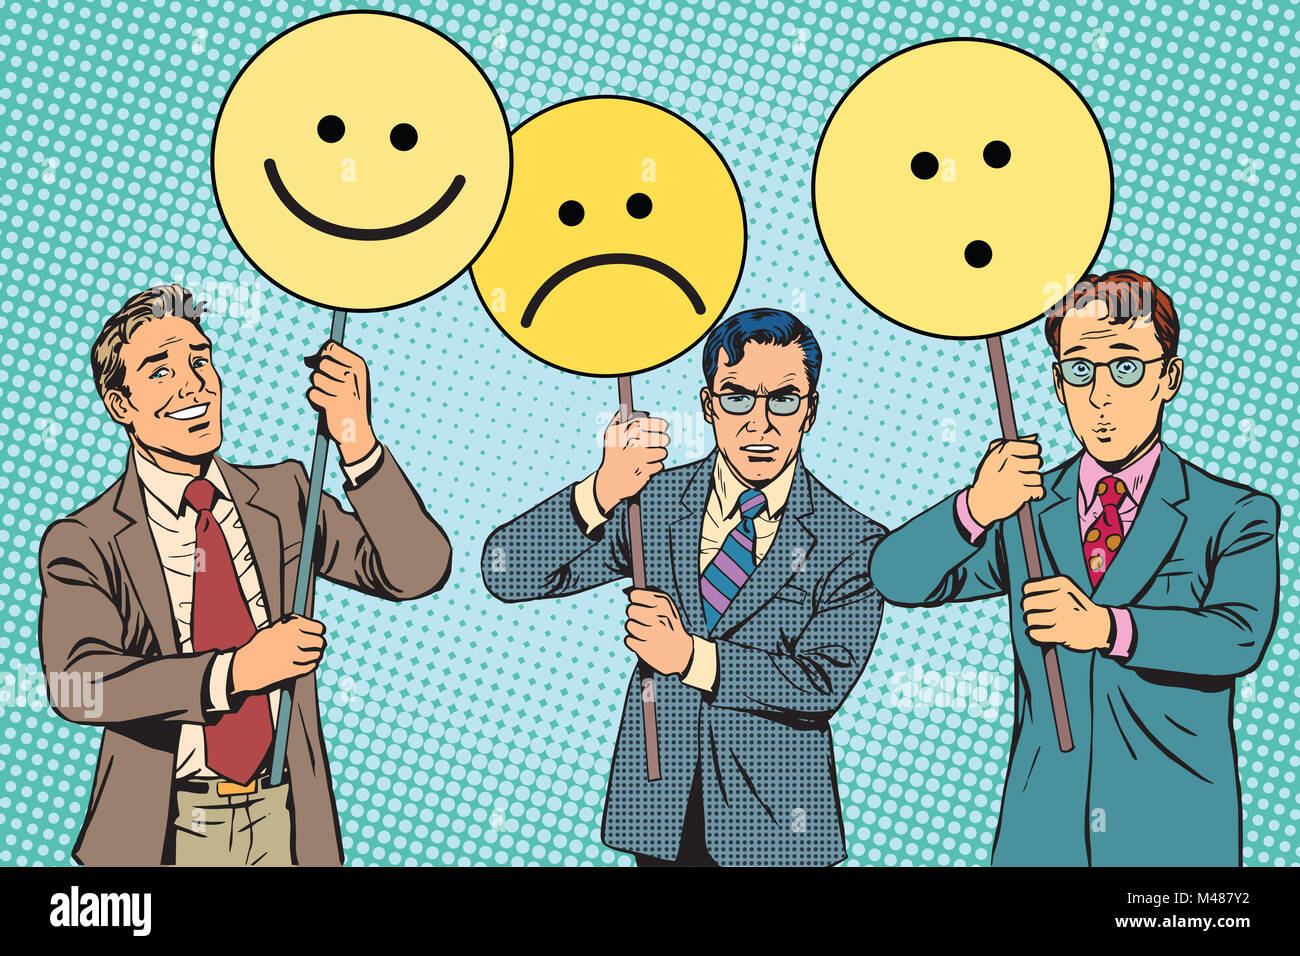 Protesters with placards Emoji joy sadness surprise - Stock Image